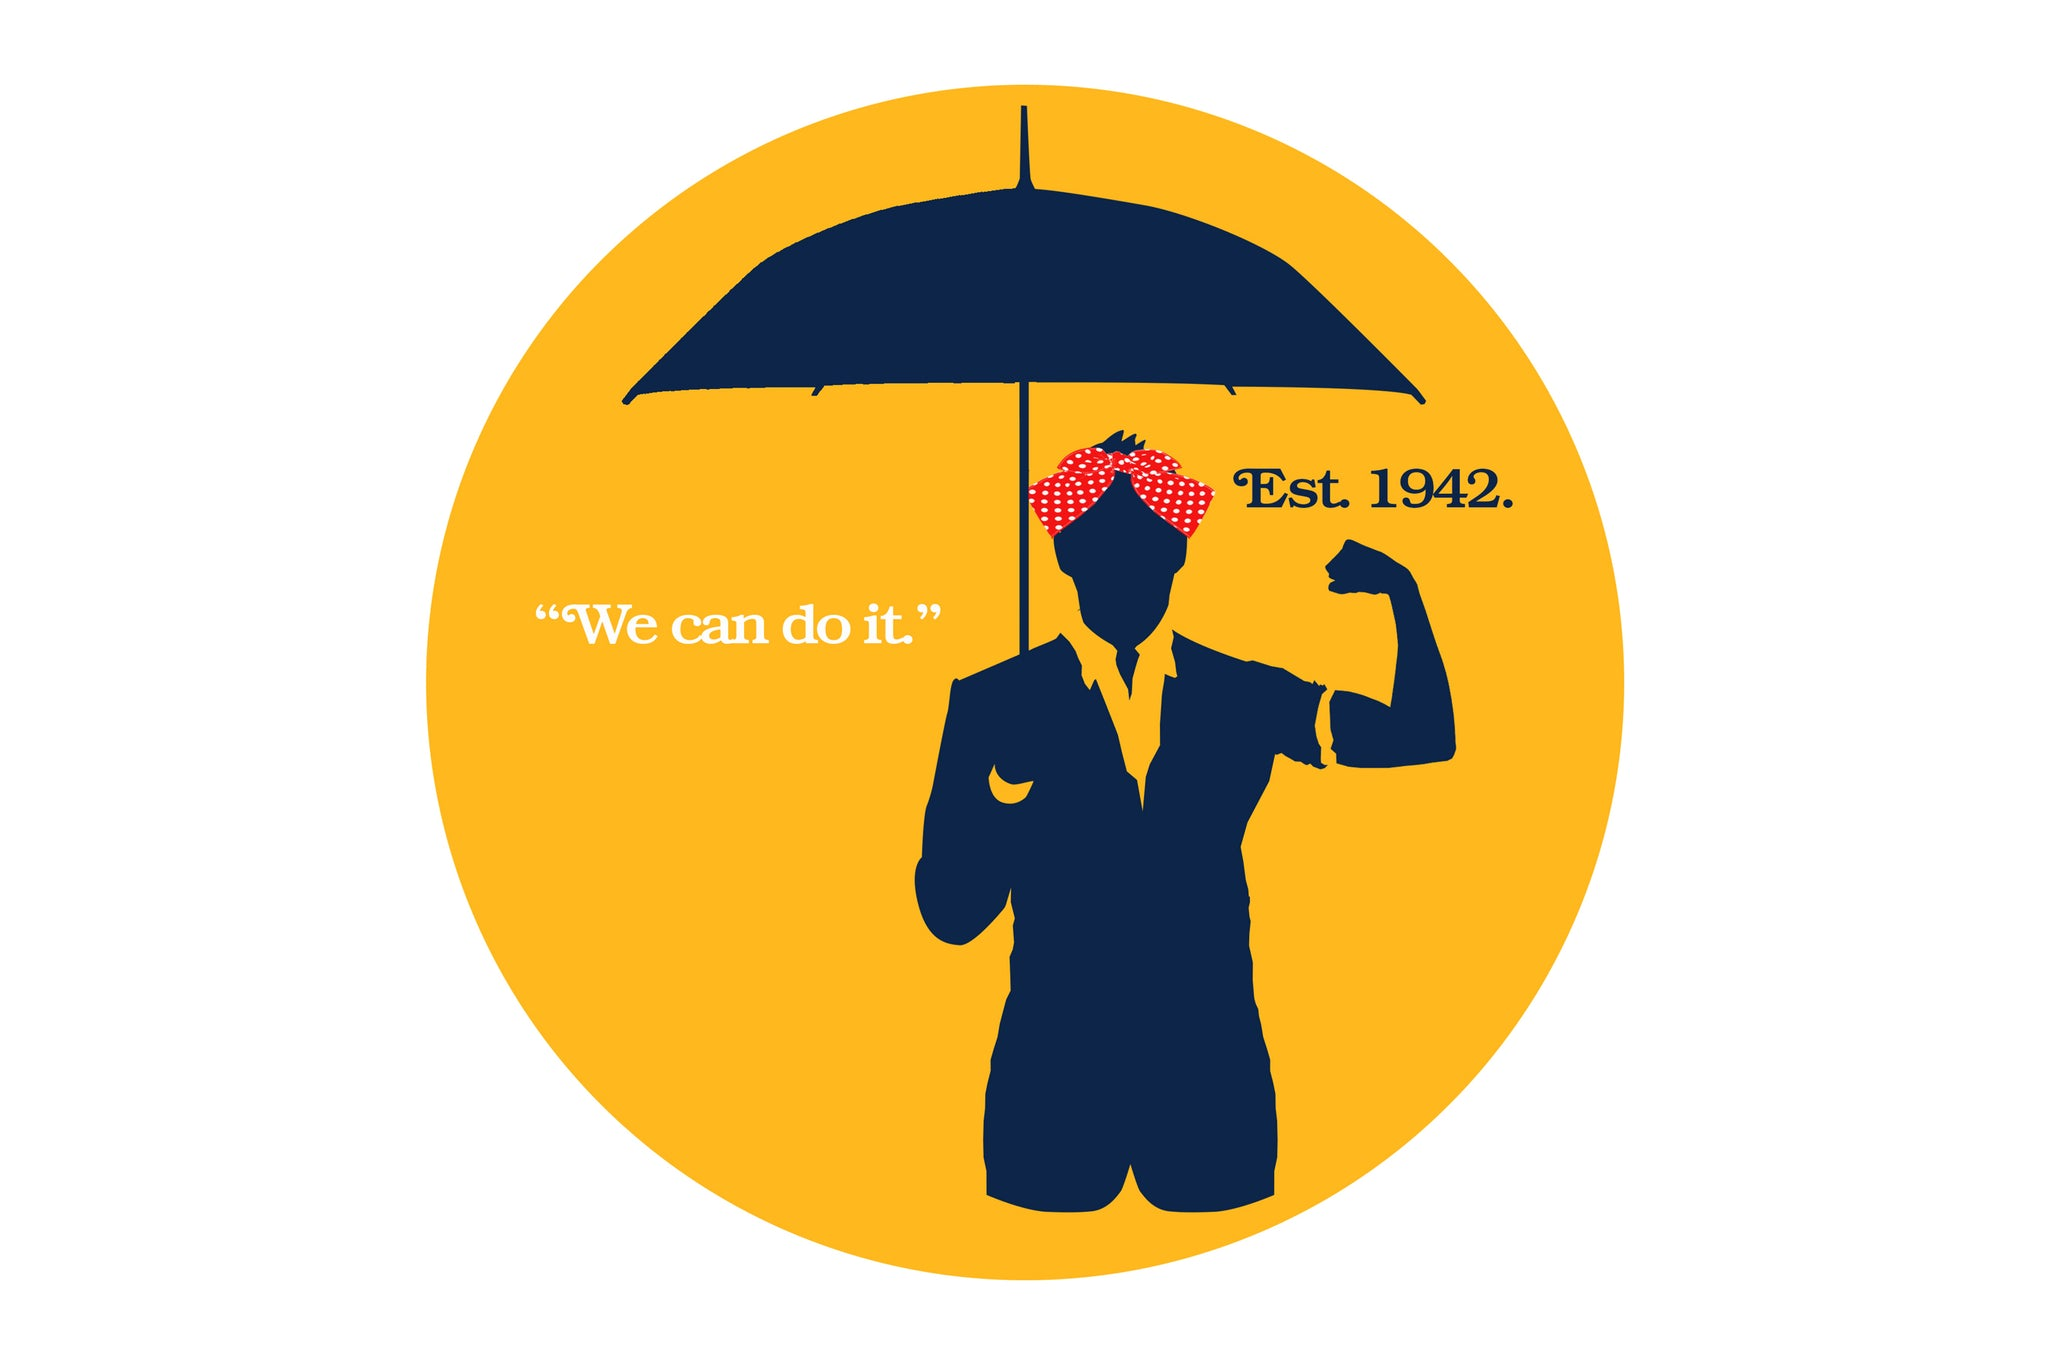 """Image of a woman in headscarf holding an umbrella. Quote """"We can do it."""". Established 1942."""